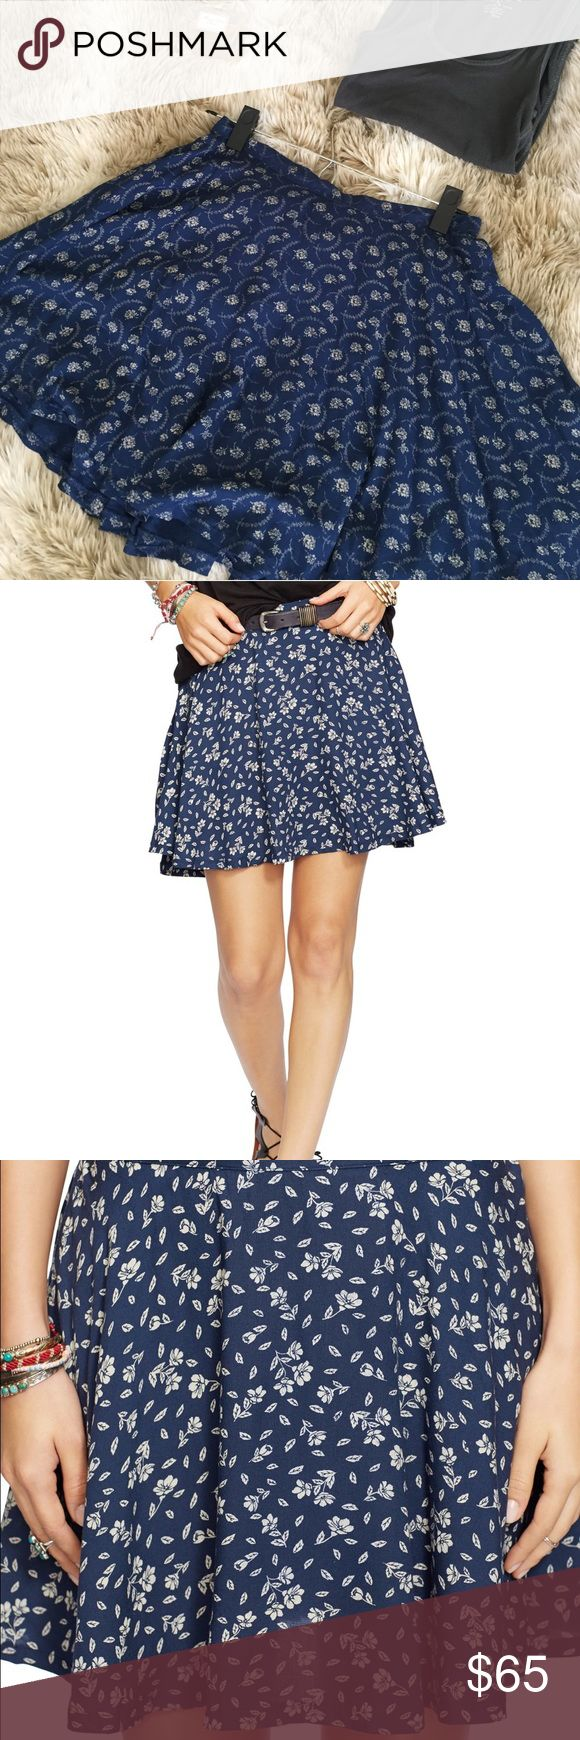 Denim & Supply Ralph Lauren Floral Print Skirt Brand new without tag, Demin & Supply Floral Print A-Line Skirt, Demin & Supply is a Ralph Lauren line. Very Gorgeous skirt and it has never been worn other than to try it on. Demin & Supply Skirts Mini